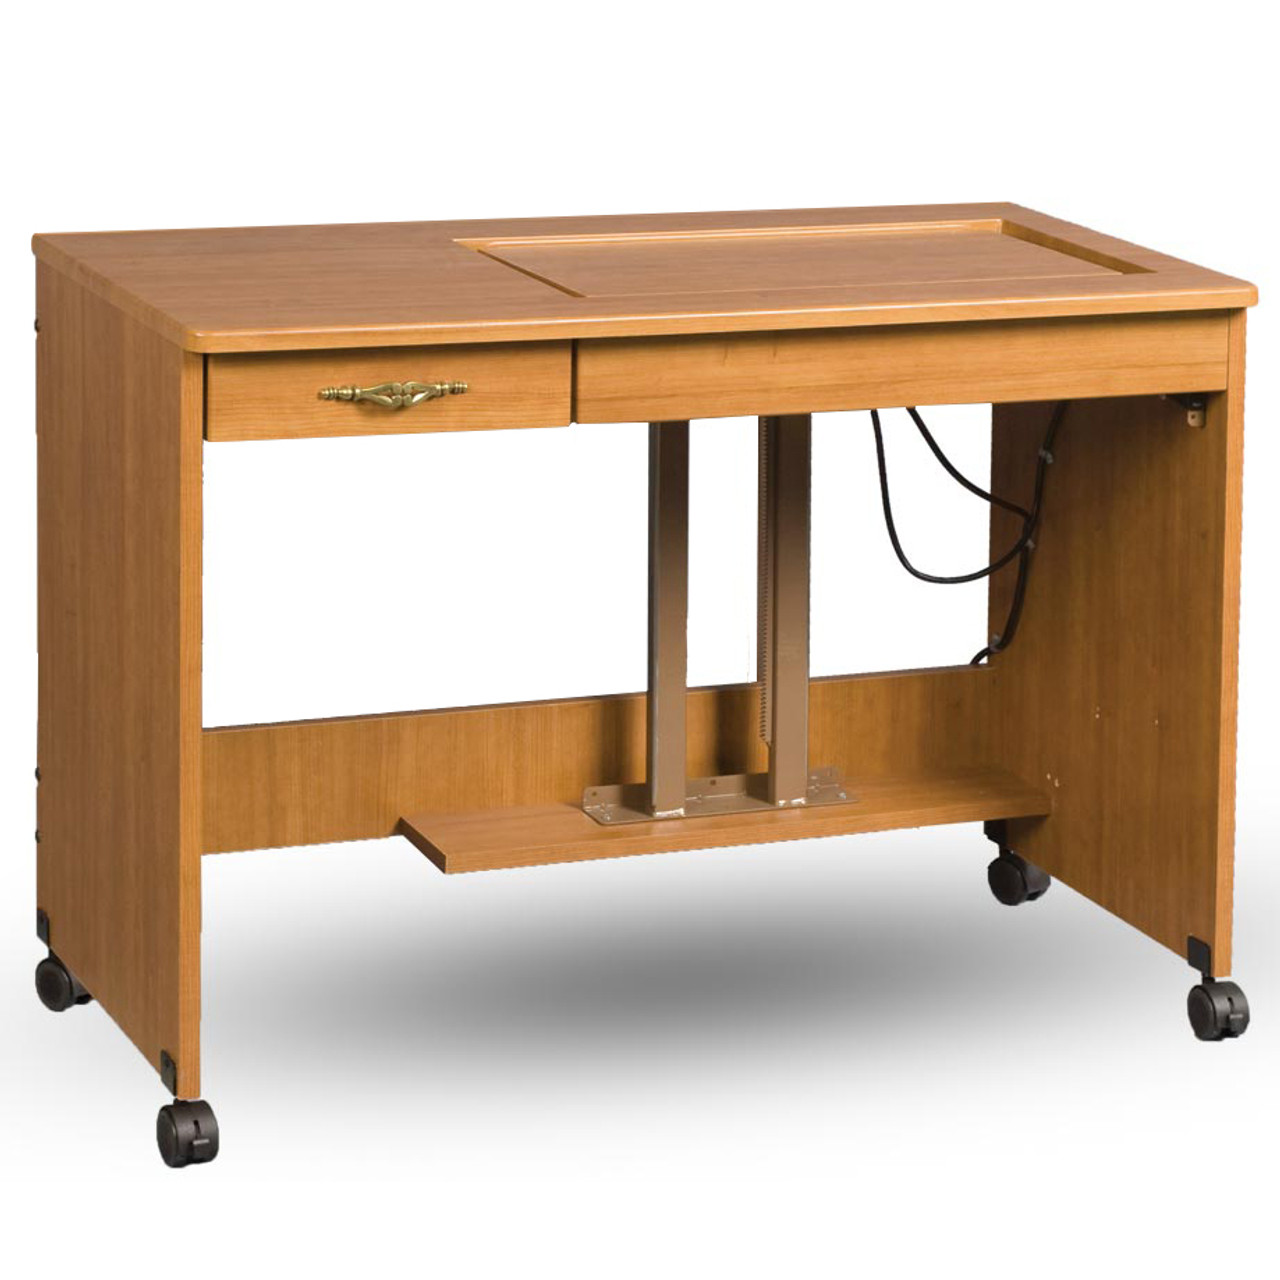 Fashion Sewing Cabinets 387 Mini Quilting/Embroidery Table $1,396.99   FREE  SHIPPING!